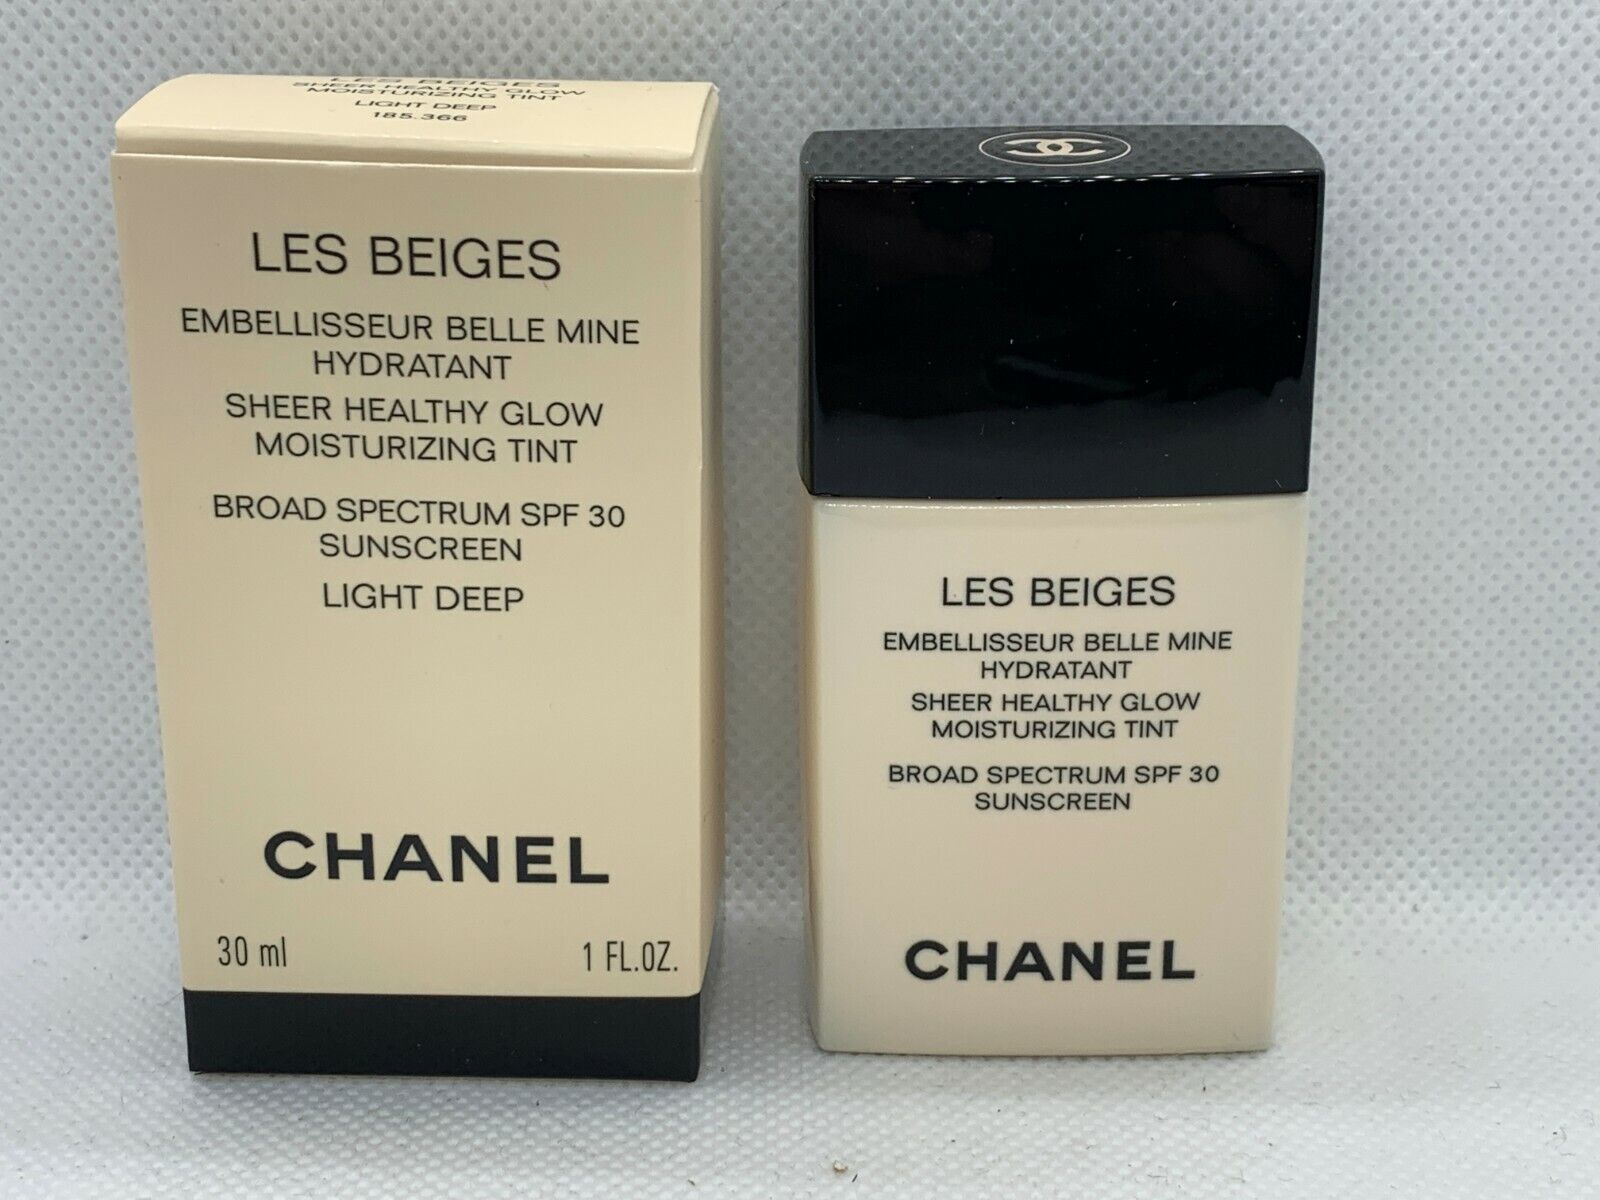 les beiges sheer healthy glow moisturizing tint